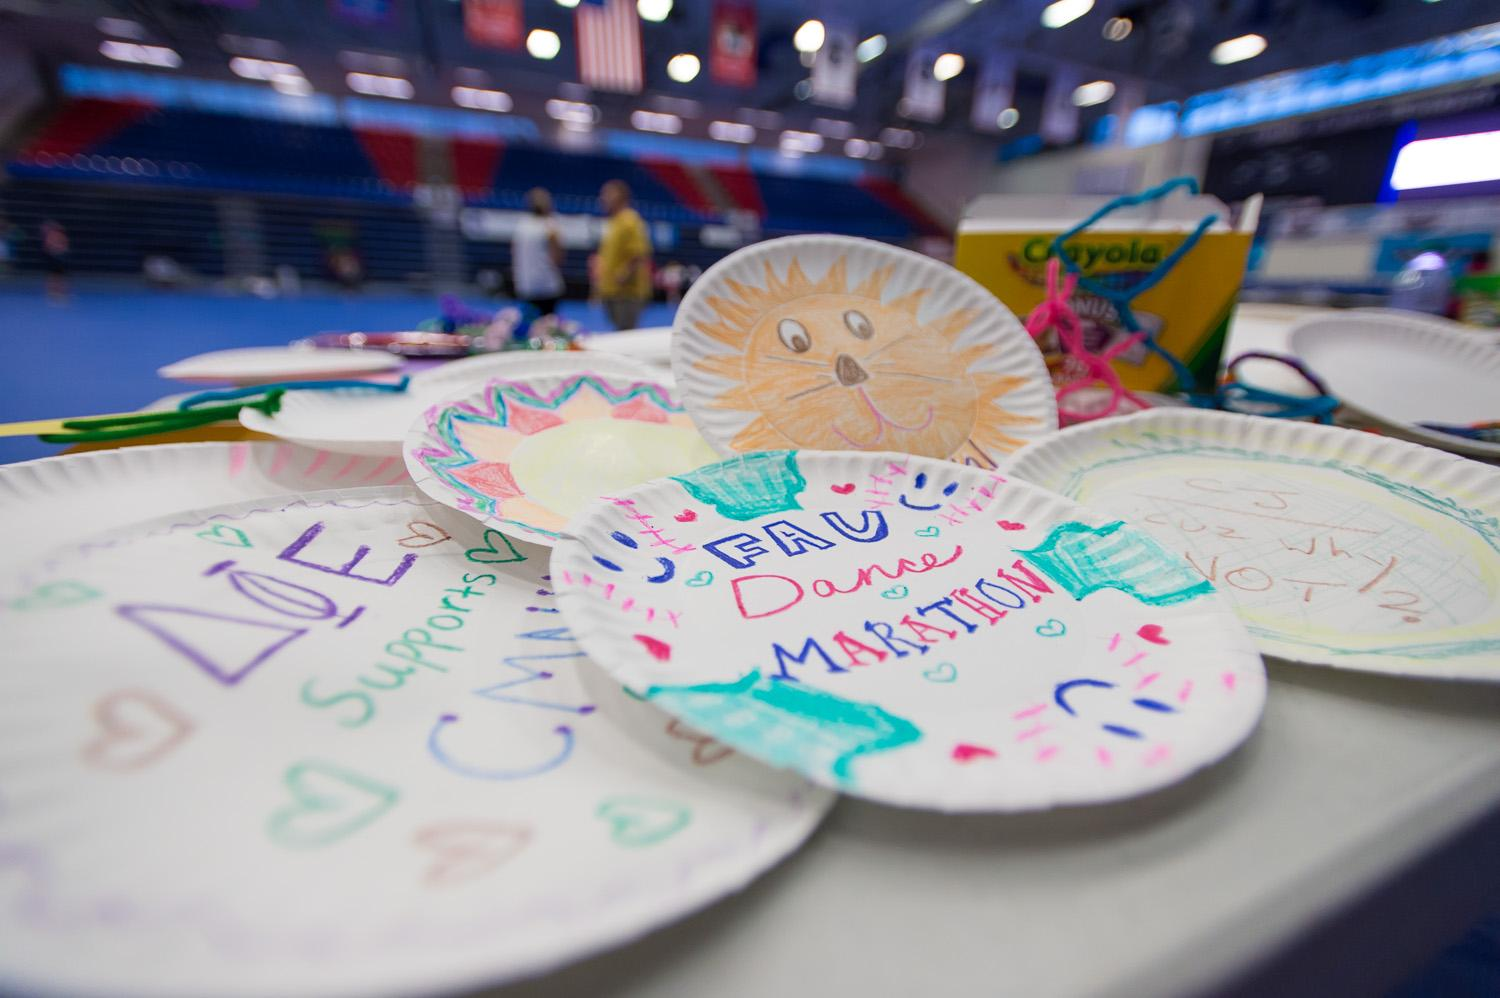 %5BMax+Jackson++%7C++Photo+Editor%5D++++++++++++++++Paper+plates+were+decorated+and+used+for+arts+and+crafts.++One+of+the+many+side+activities+students+could+take+part+in+at+the+Dance+Marathon.